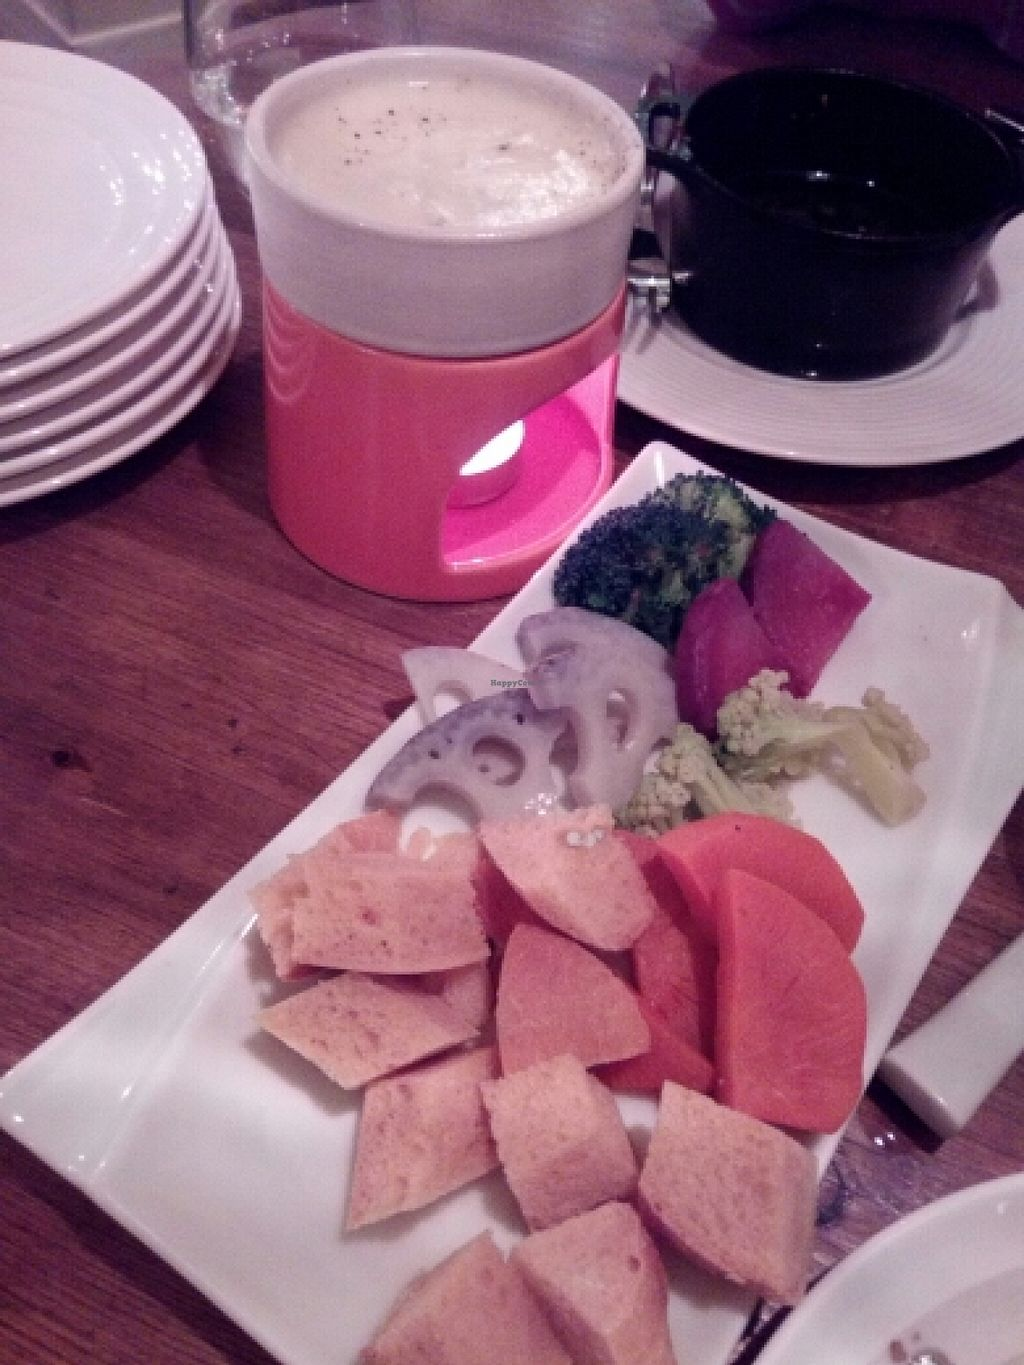 """Photo of Longing House  by <a href=""""/members/profile/freesiaoriental"""">freesiaoriental</a> <br/>Partly eaten vegetable cheese fondue <br/> February 21, 2016  - <a href='/contact/abuse/image/65638/137152'>Report</a>"""